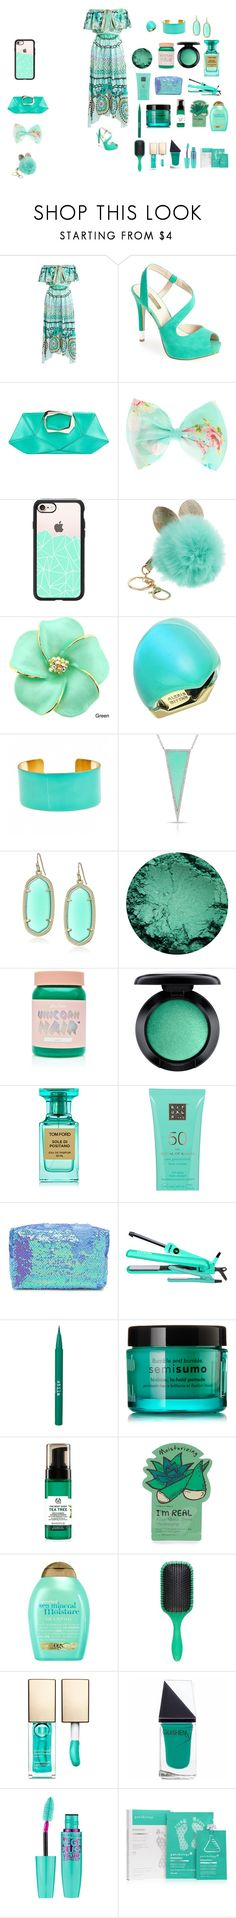 """Bahamas"" by sierracook14 ❤ liked on Polyvore featuring Temperley London, GUESS, Roger Vivier, Casetify, Alexis Bittar, Fornash, Kendra Scott, Lime Crime, MAC Cosmetics and Tom Ford"